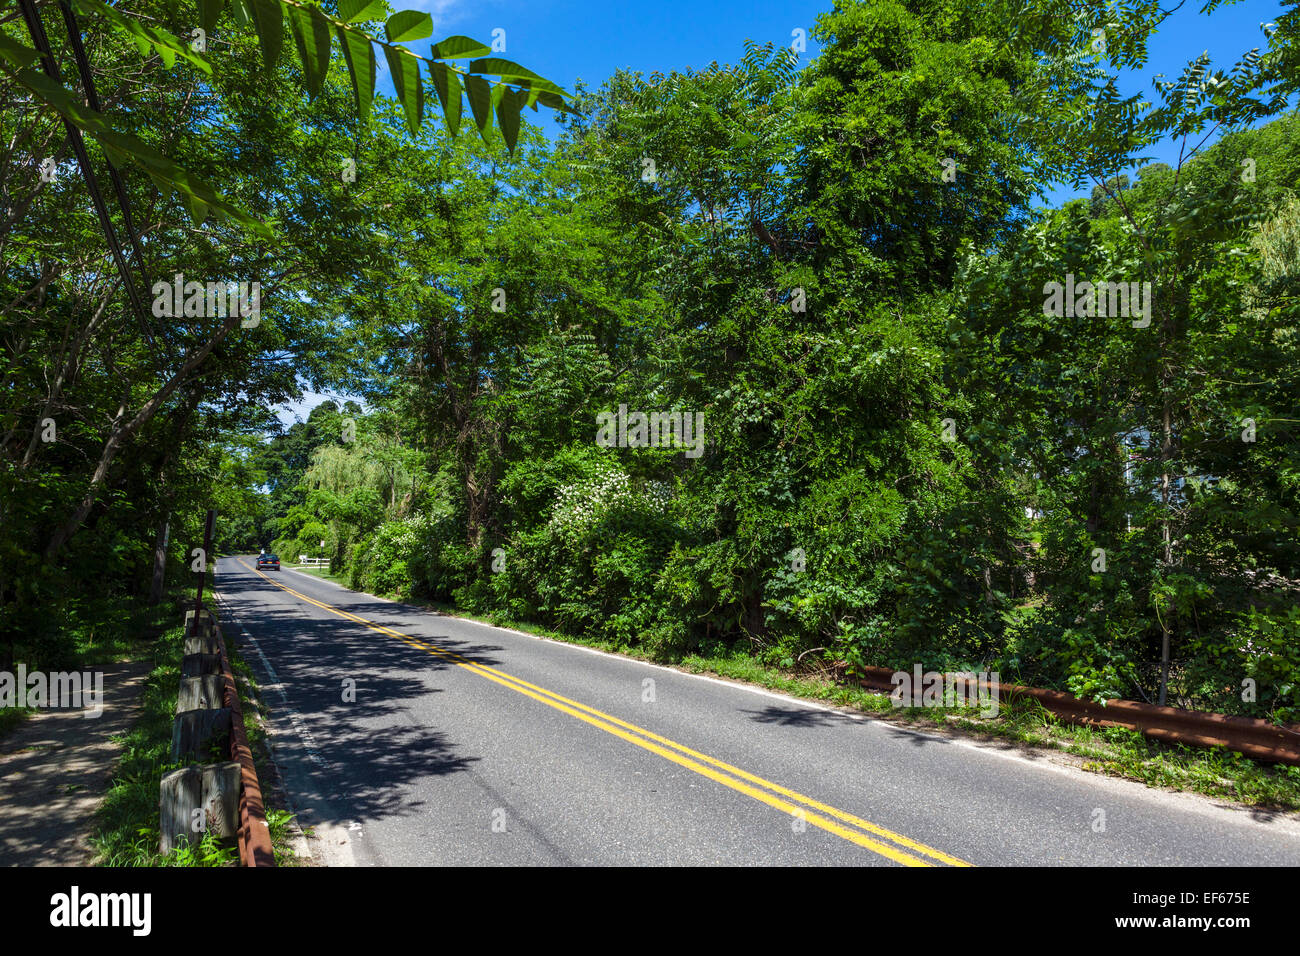 Country road in Cold Spring Harbor, Huntington, Suffolk County, Long Island , NY, USA - Stock Image